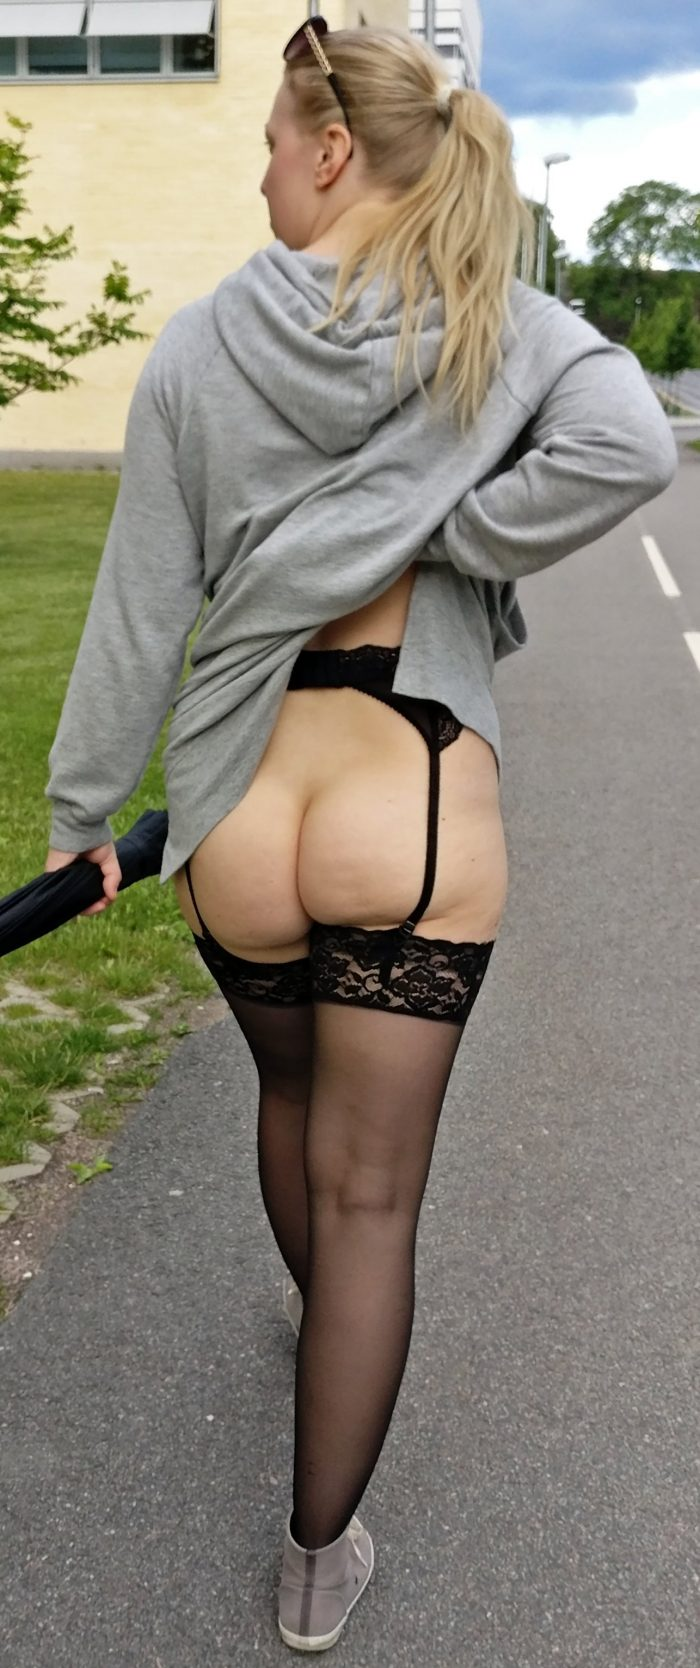 Amateur women show their naked asses outdoors